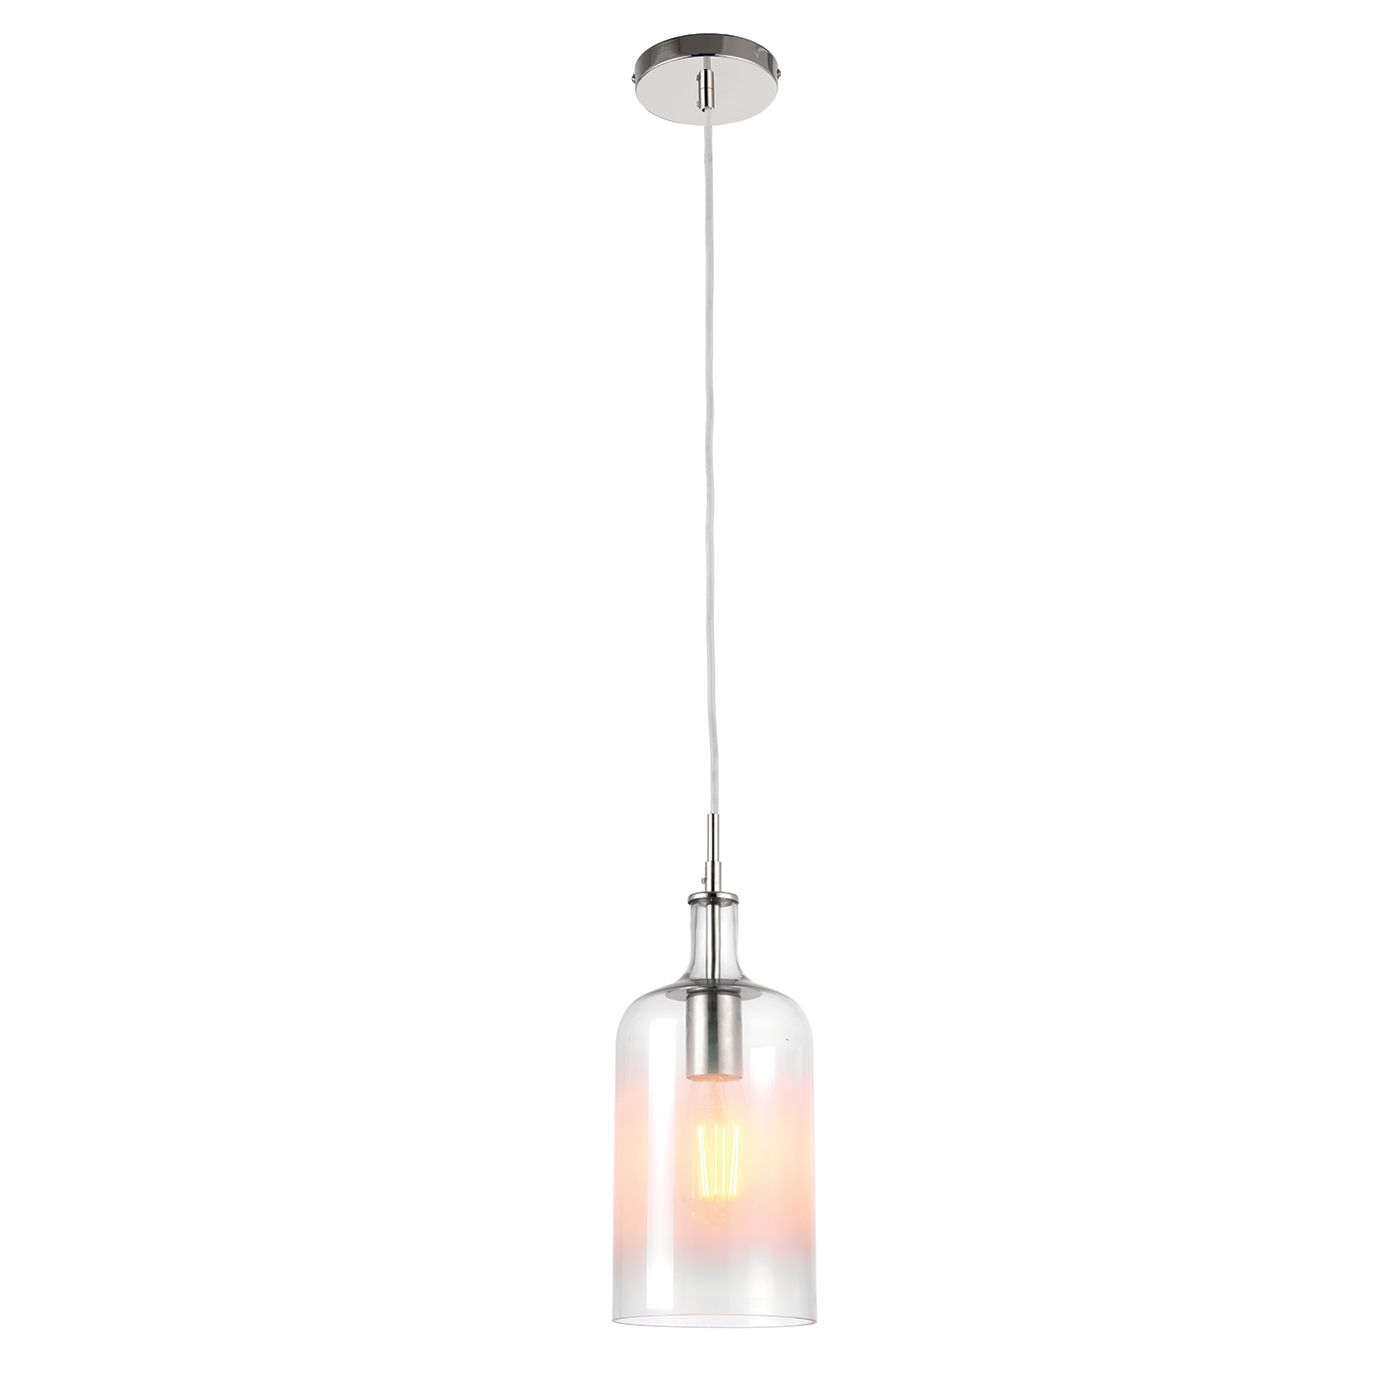 Endon Frankie pendant 1x 40W Clear & white painted glass bright nickel plate Thumbnail 1